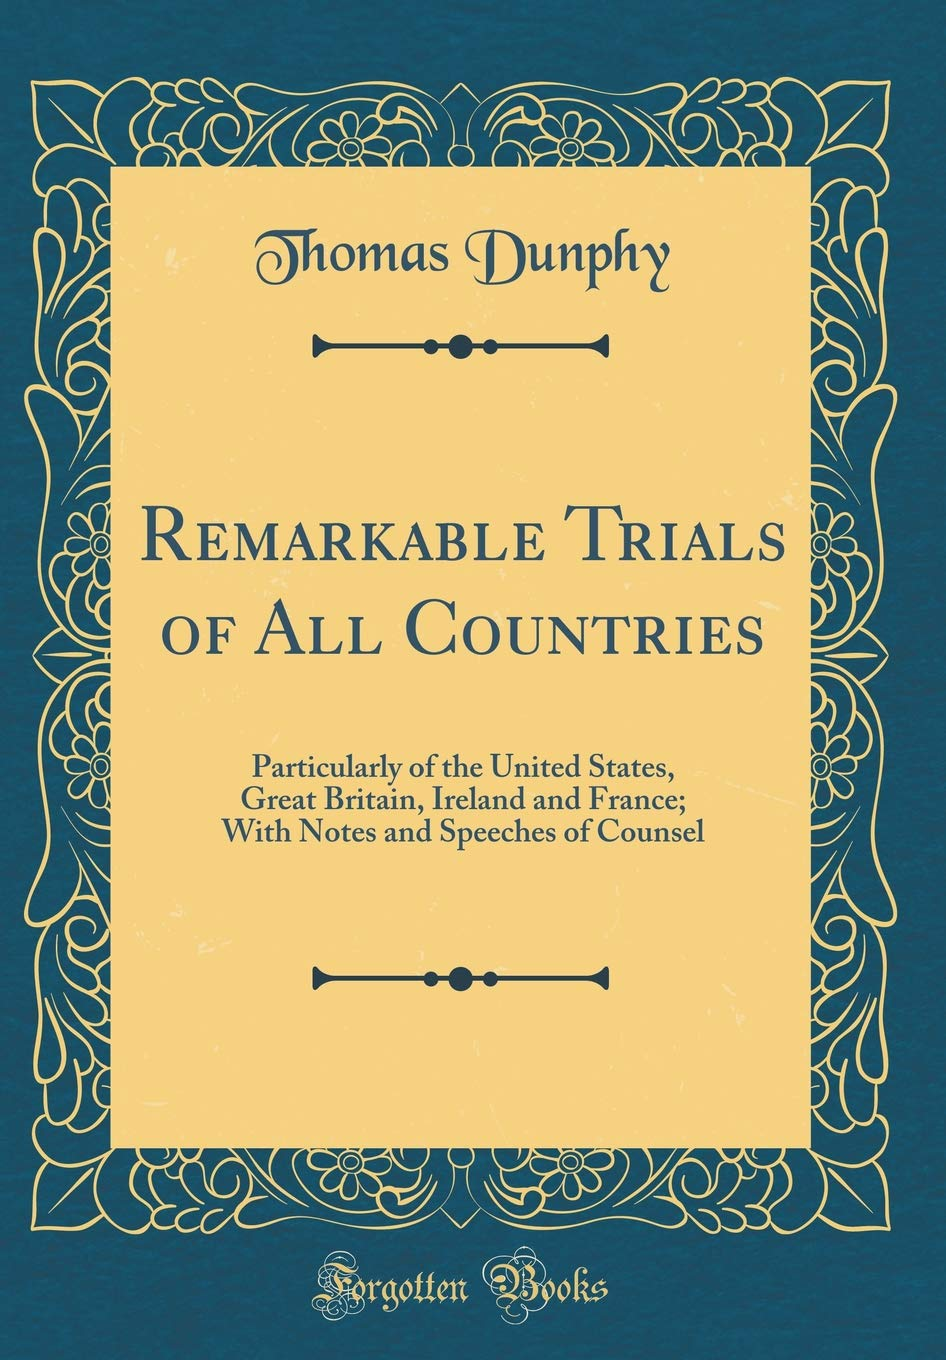 Remarkable Trials of All Countries: Particularly of the United States, Great Britain, Ireland and France; With Notes and Speeches of Counsel (Classic Reprint) ebook